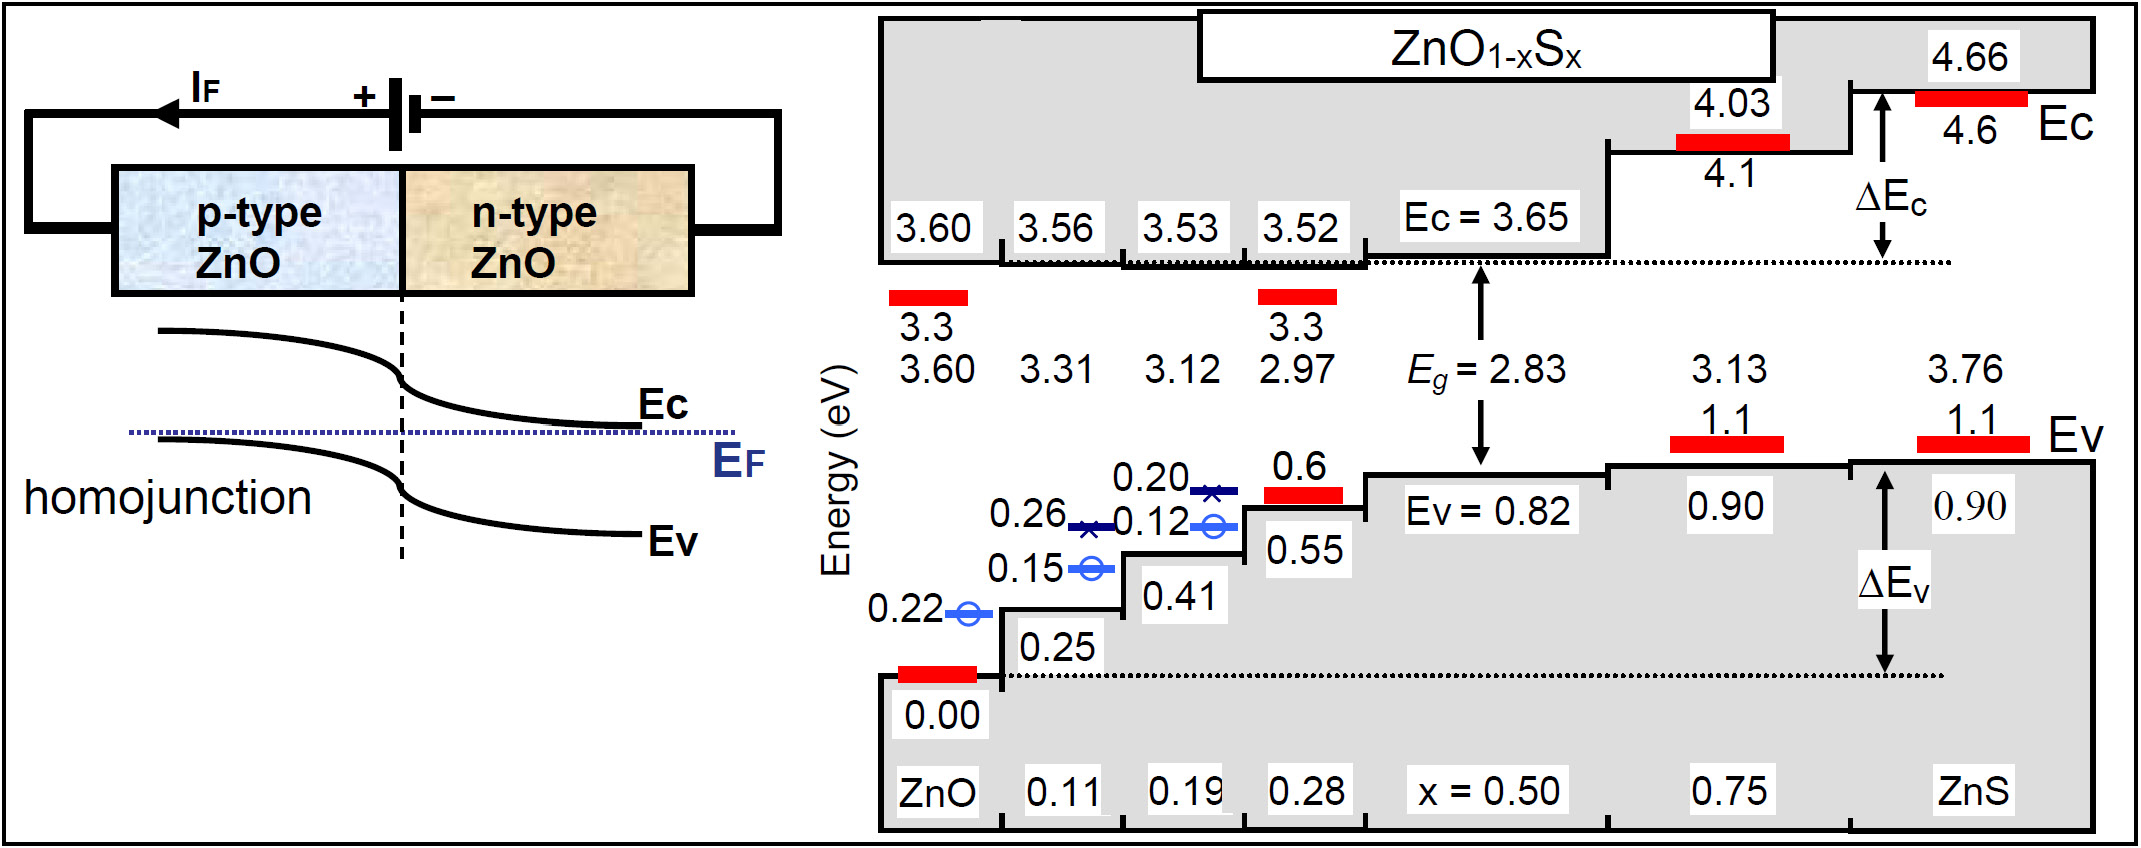 Zno Is Use In A Broad Range Of Semiconductor Technologies